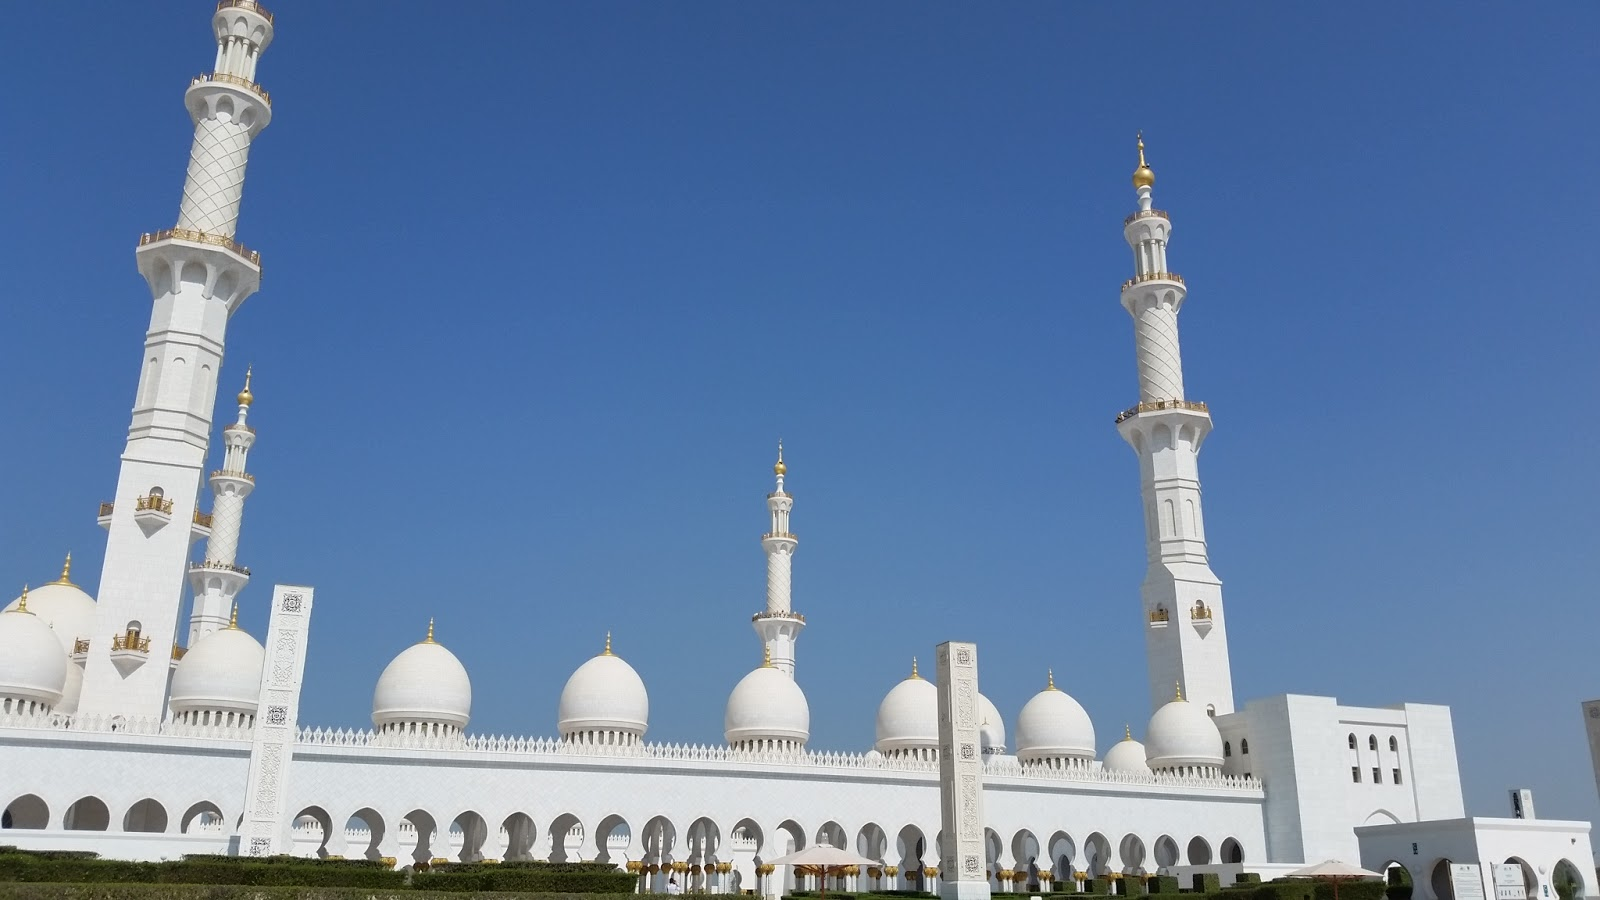 Exterior: Lets Soar With Eagles: The United Arab Emirates, Abu Dhabi